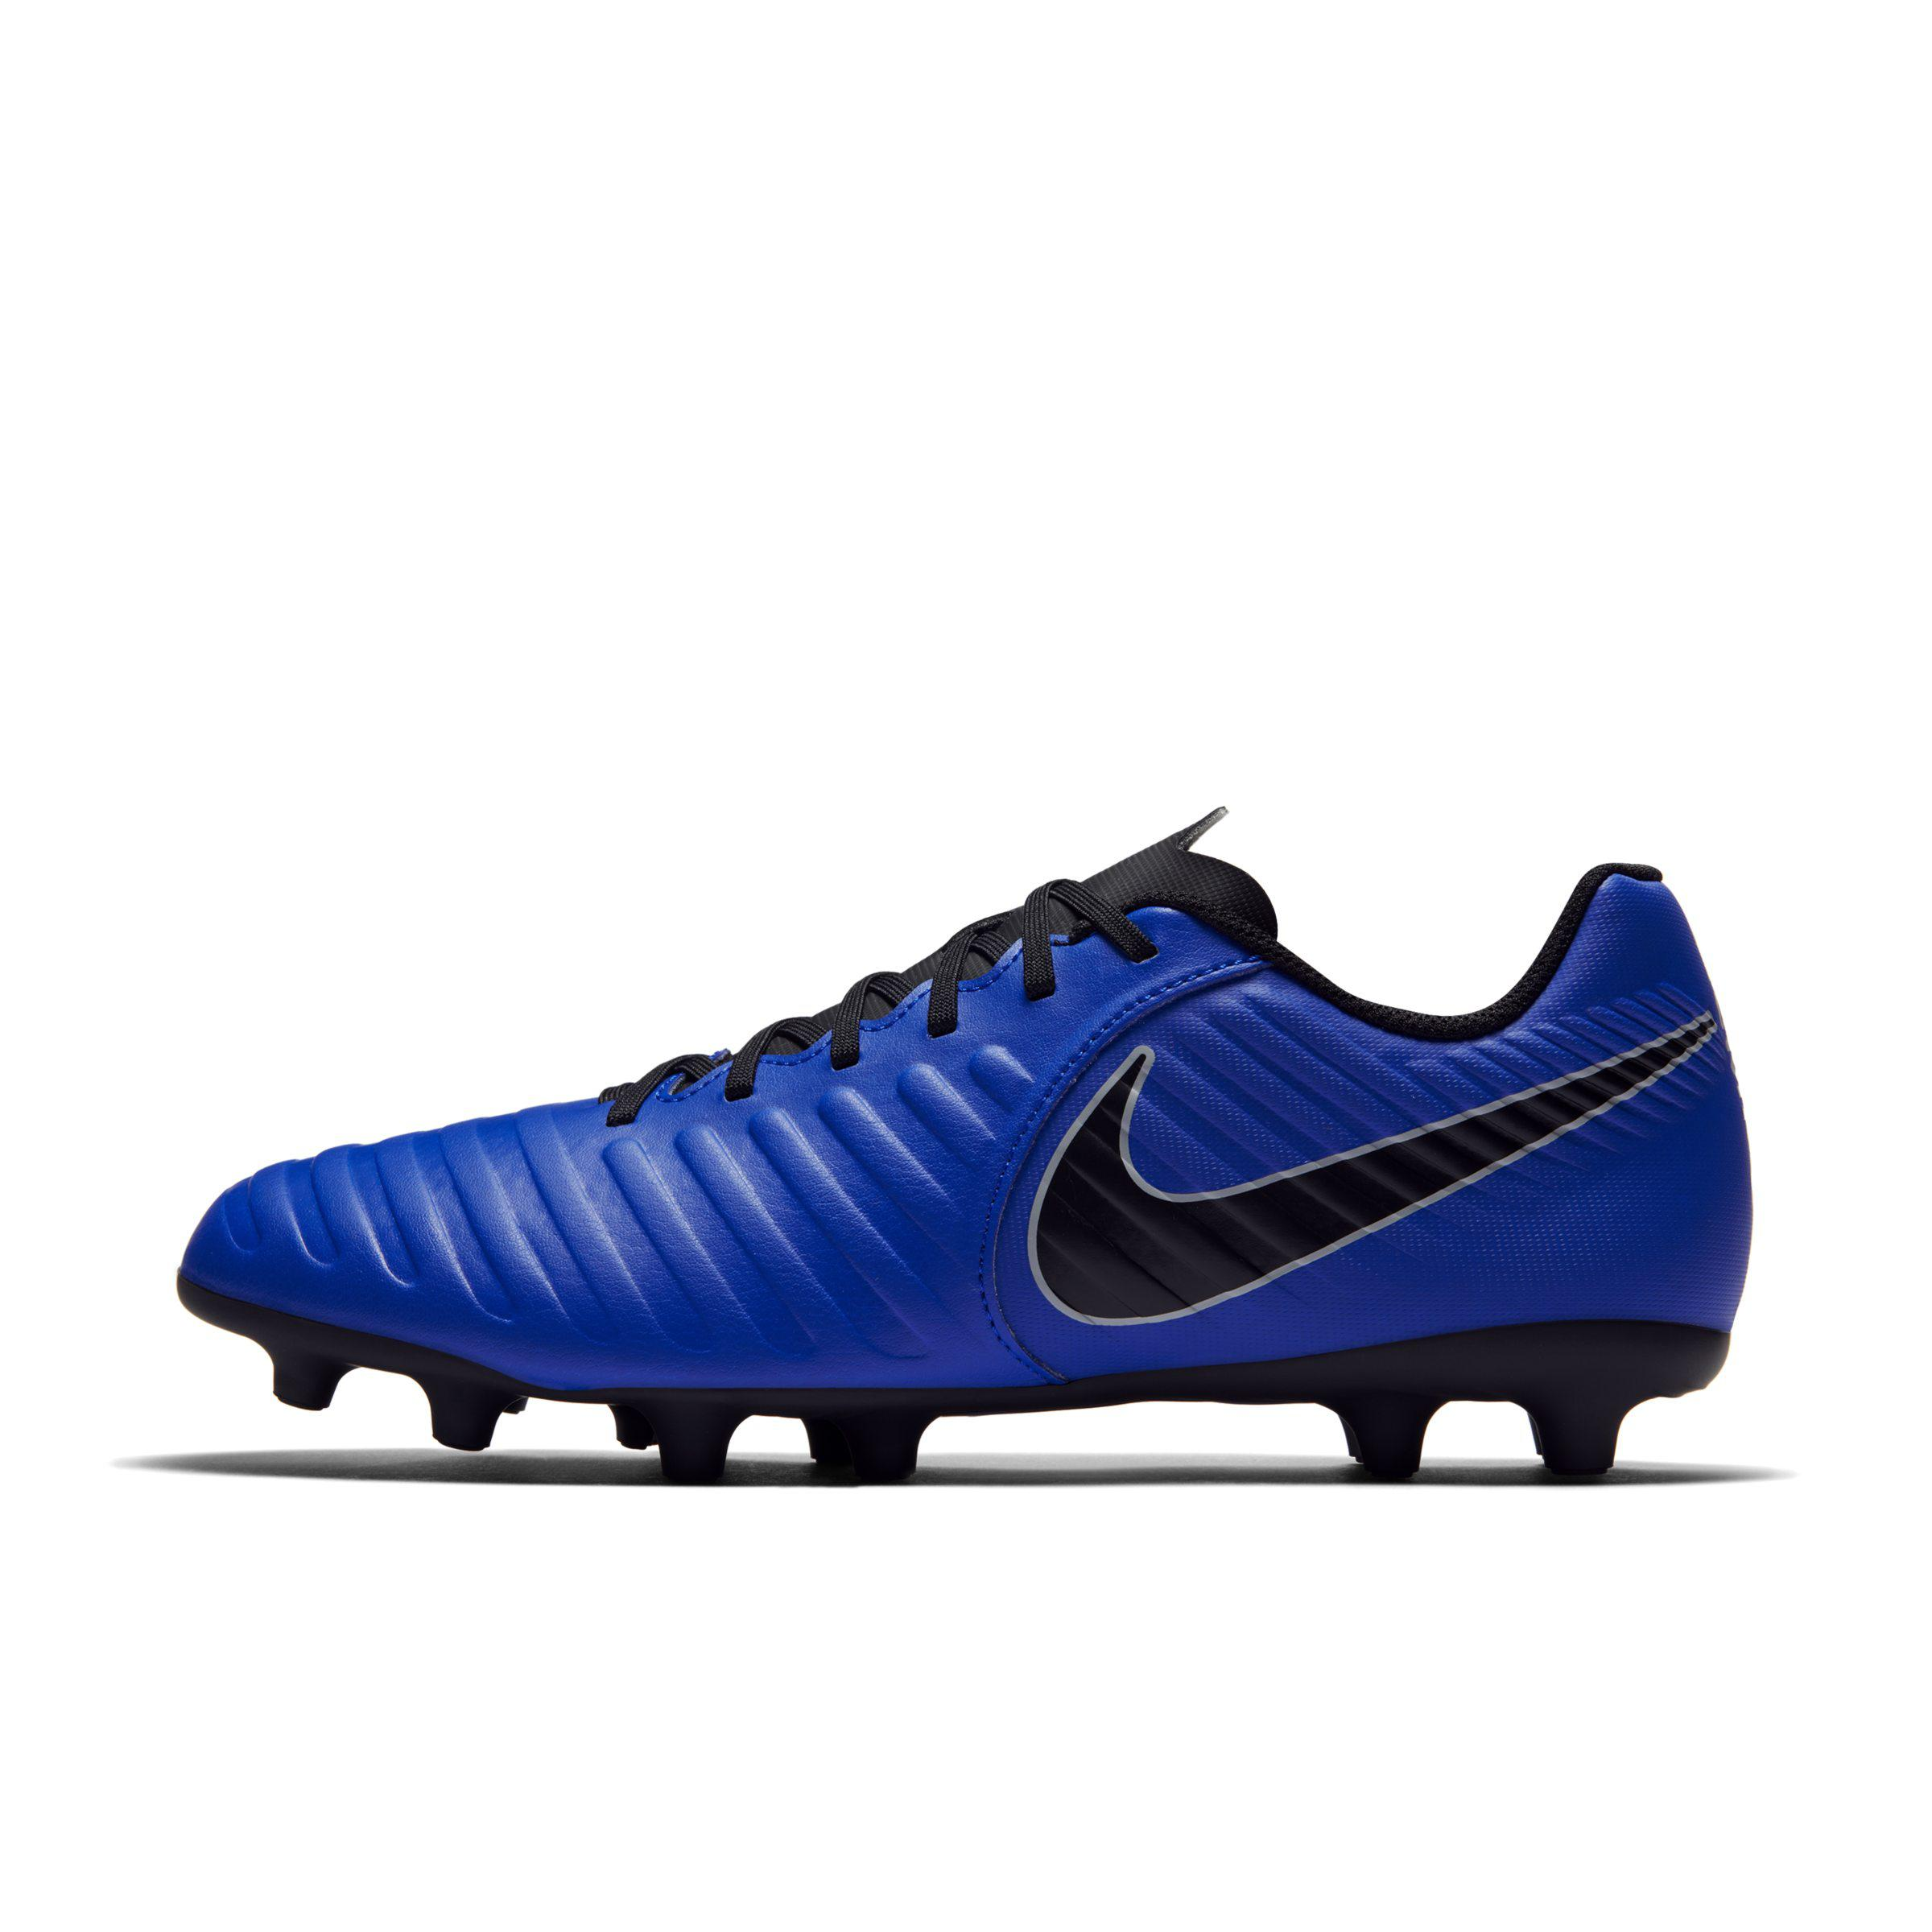 7a6186633 Nike Tiempo Legend Vii Club Multi-ground Football Boot in Blue for ...